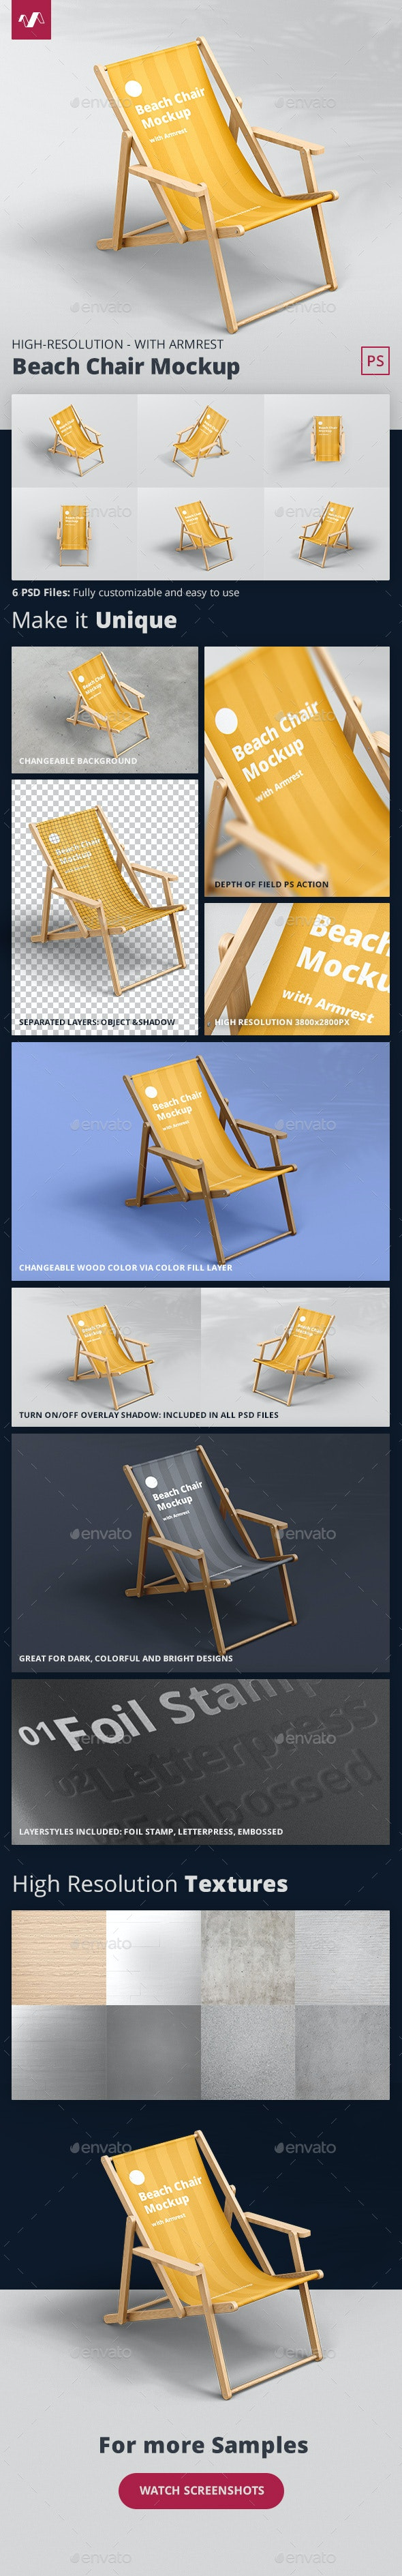 Beach Chair Mockup with Armrest - Miscellaneous Print